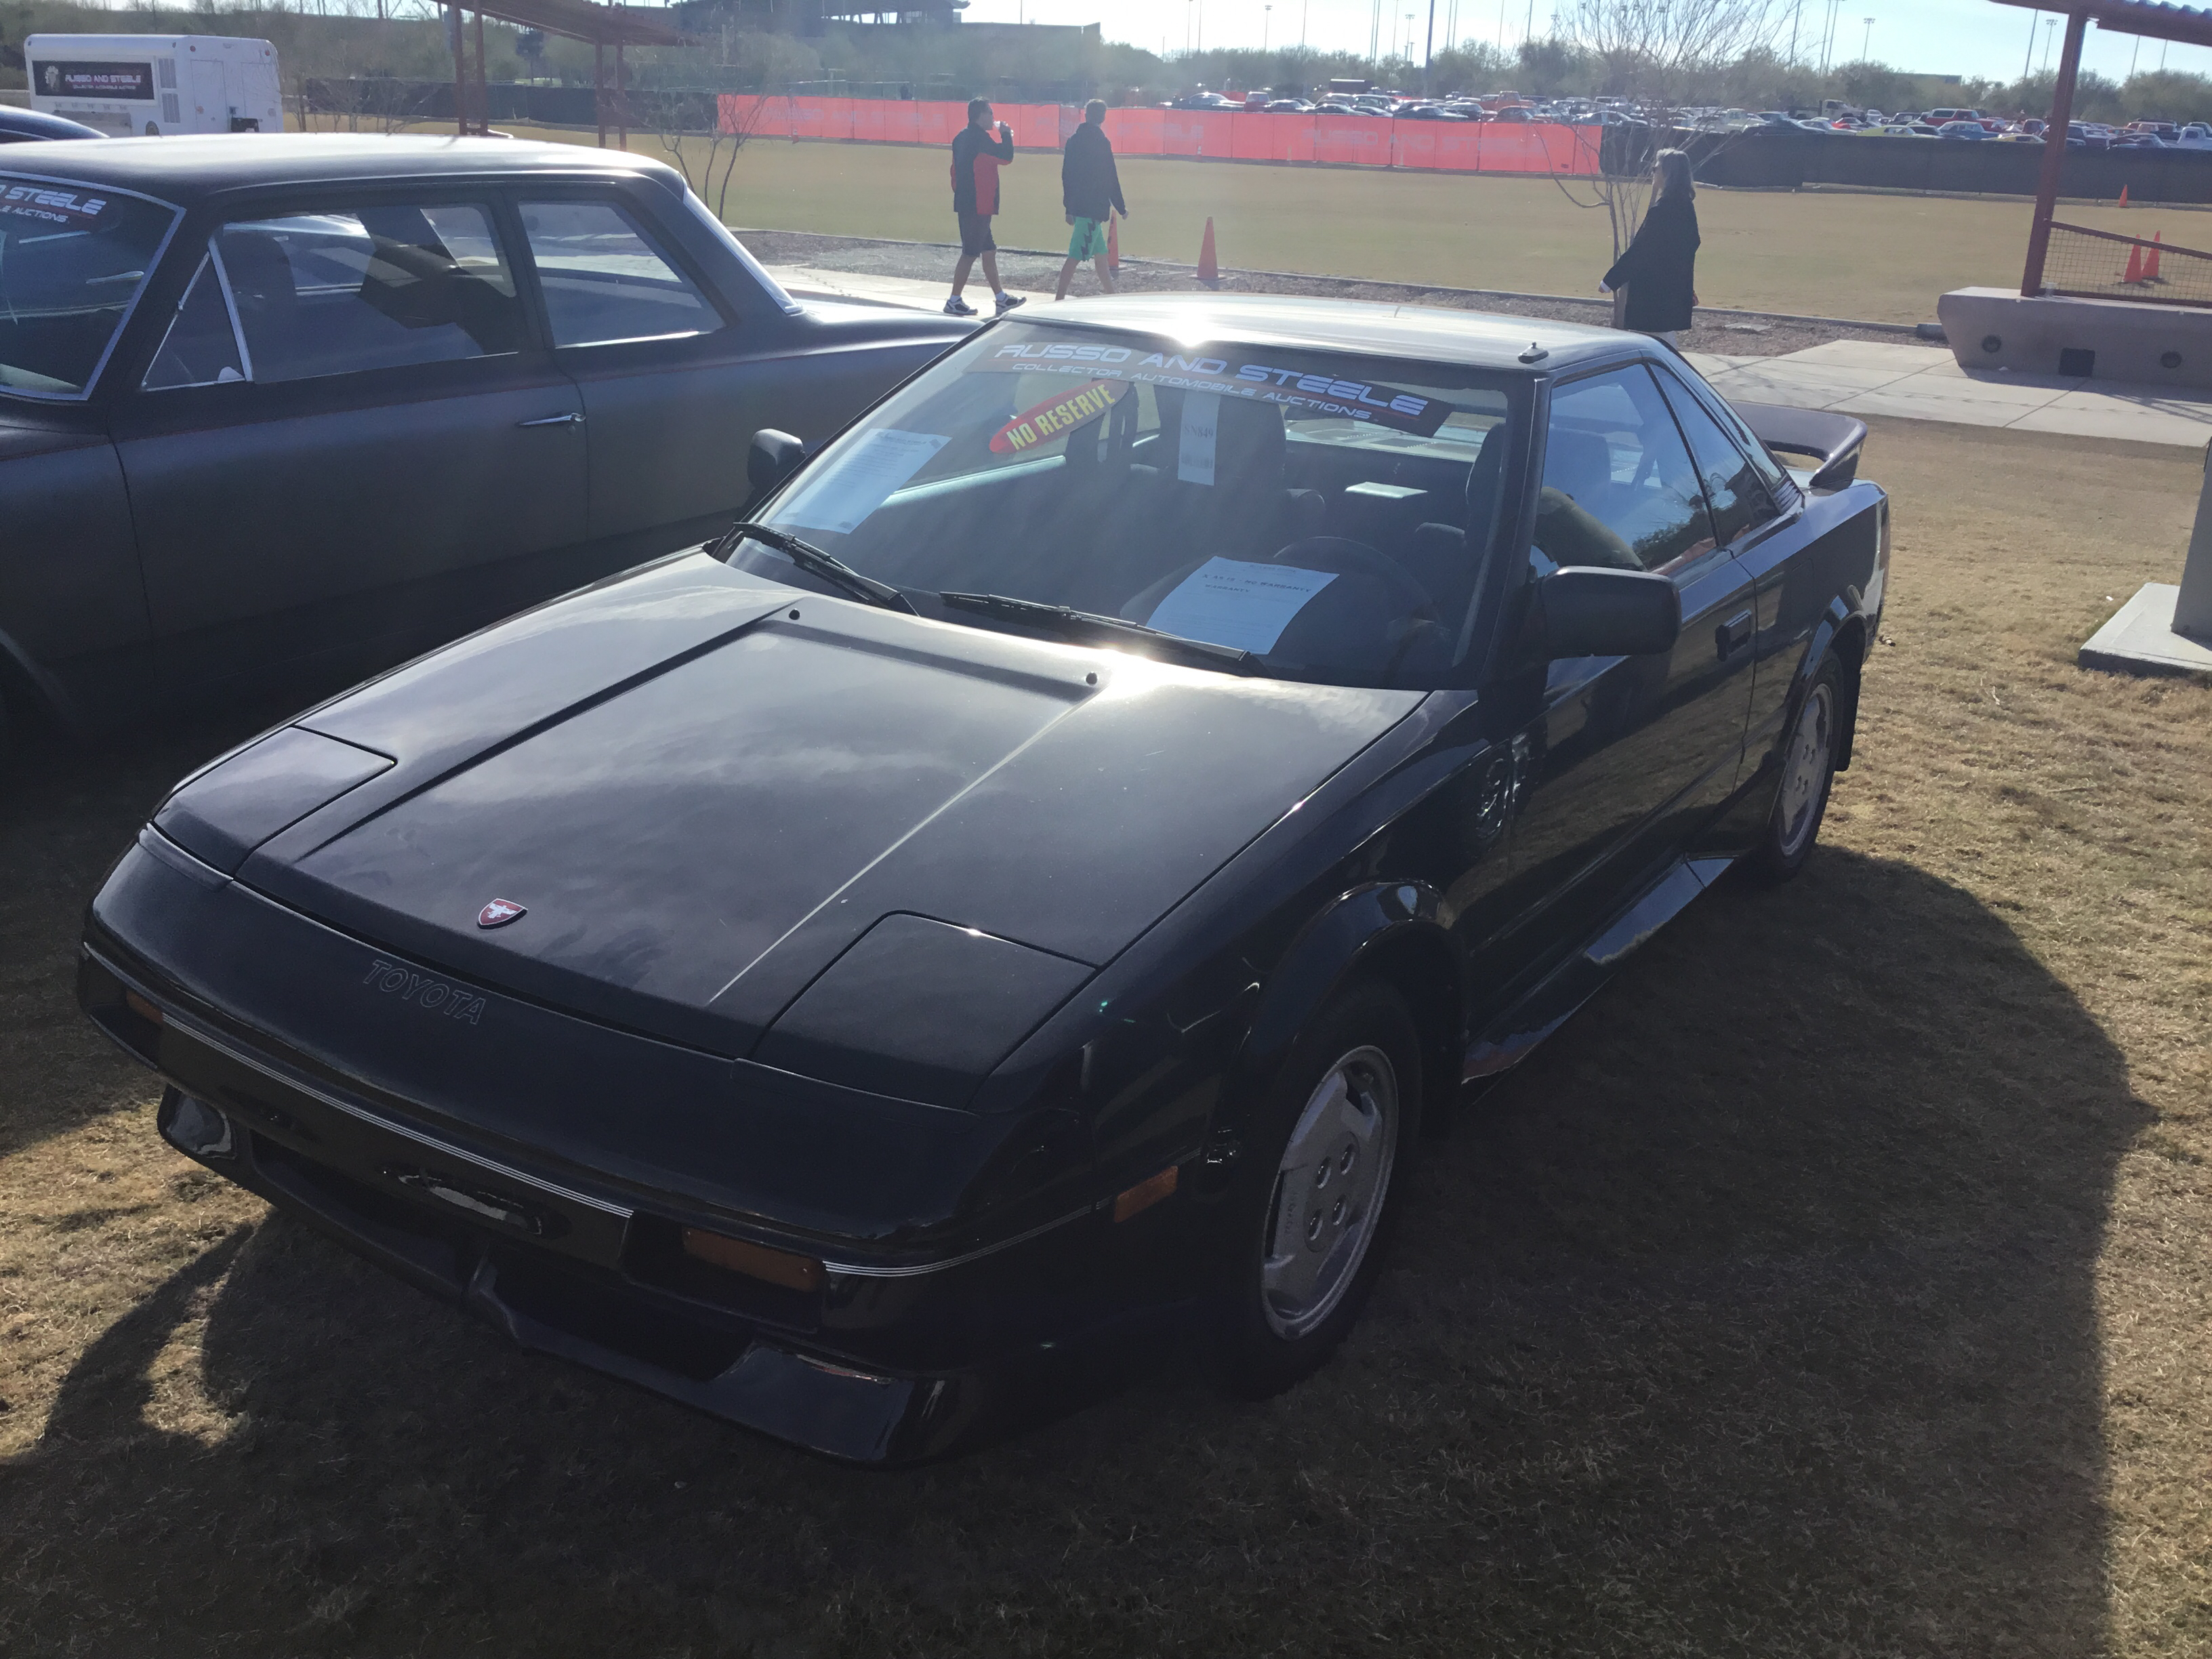 1986 Toyota MR2 Mk I Values | Hagerty Valuation Tool®